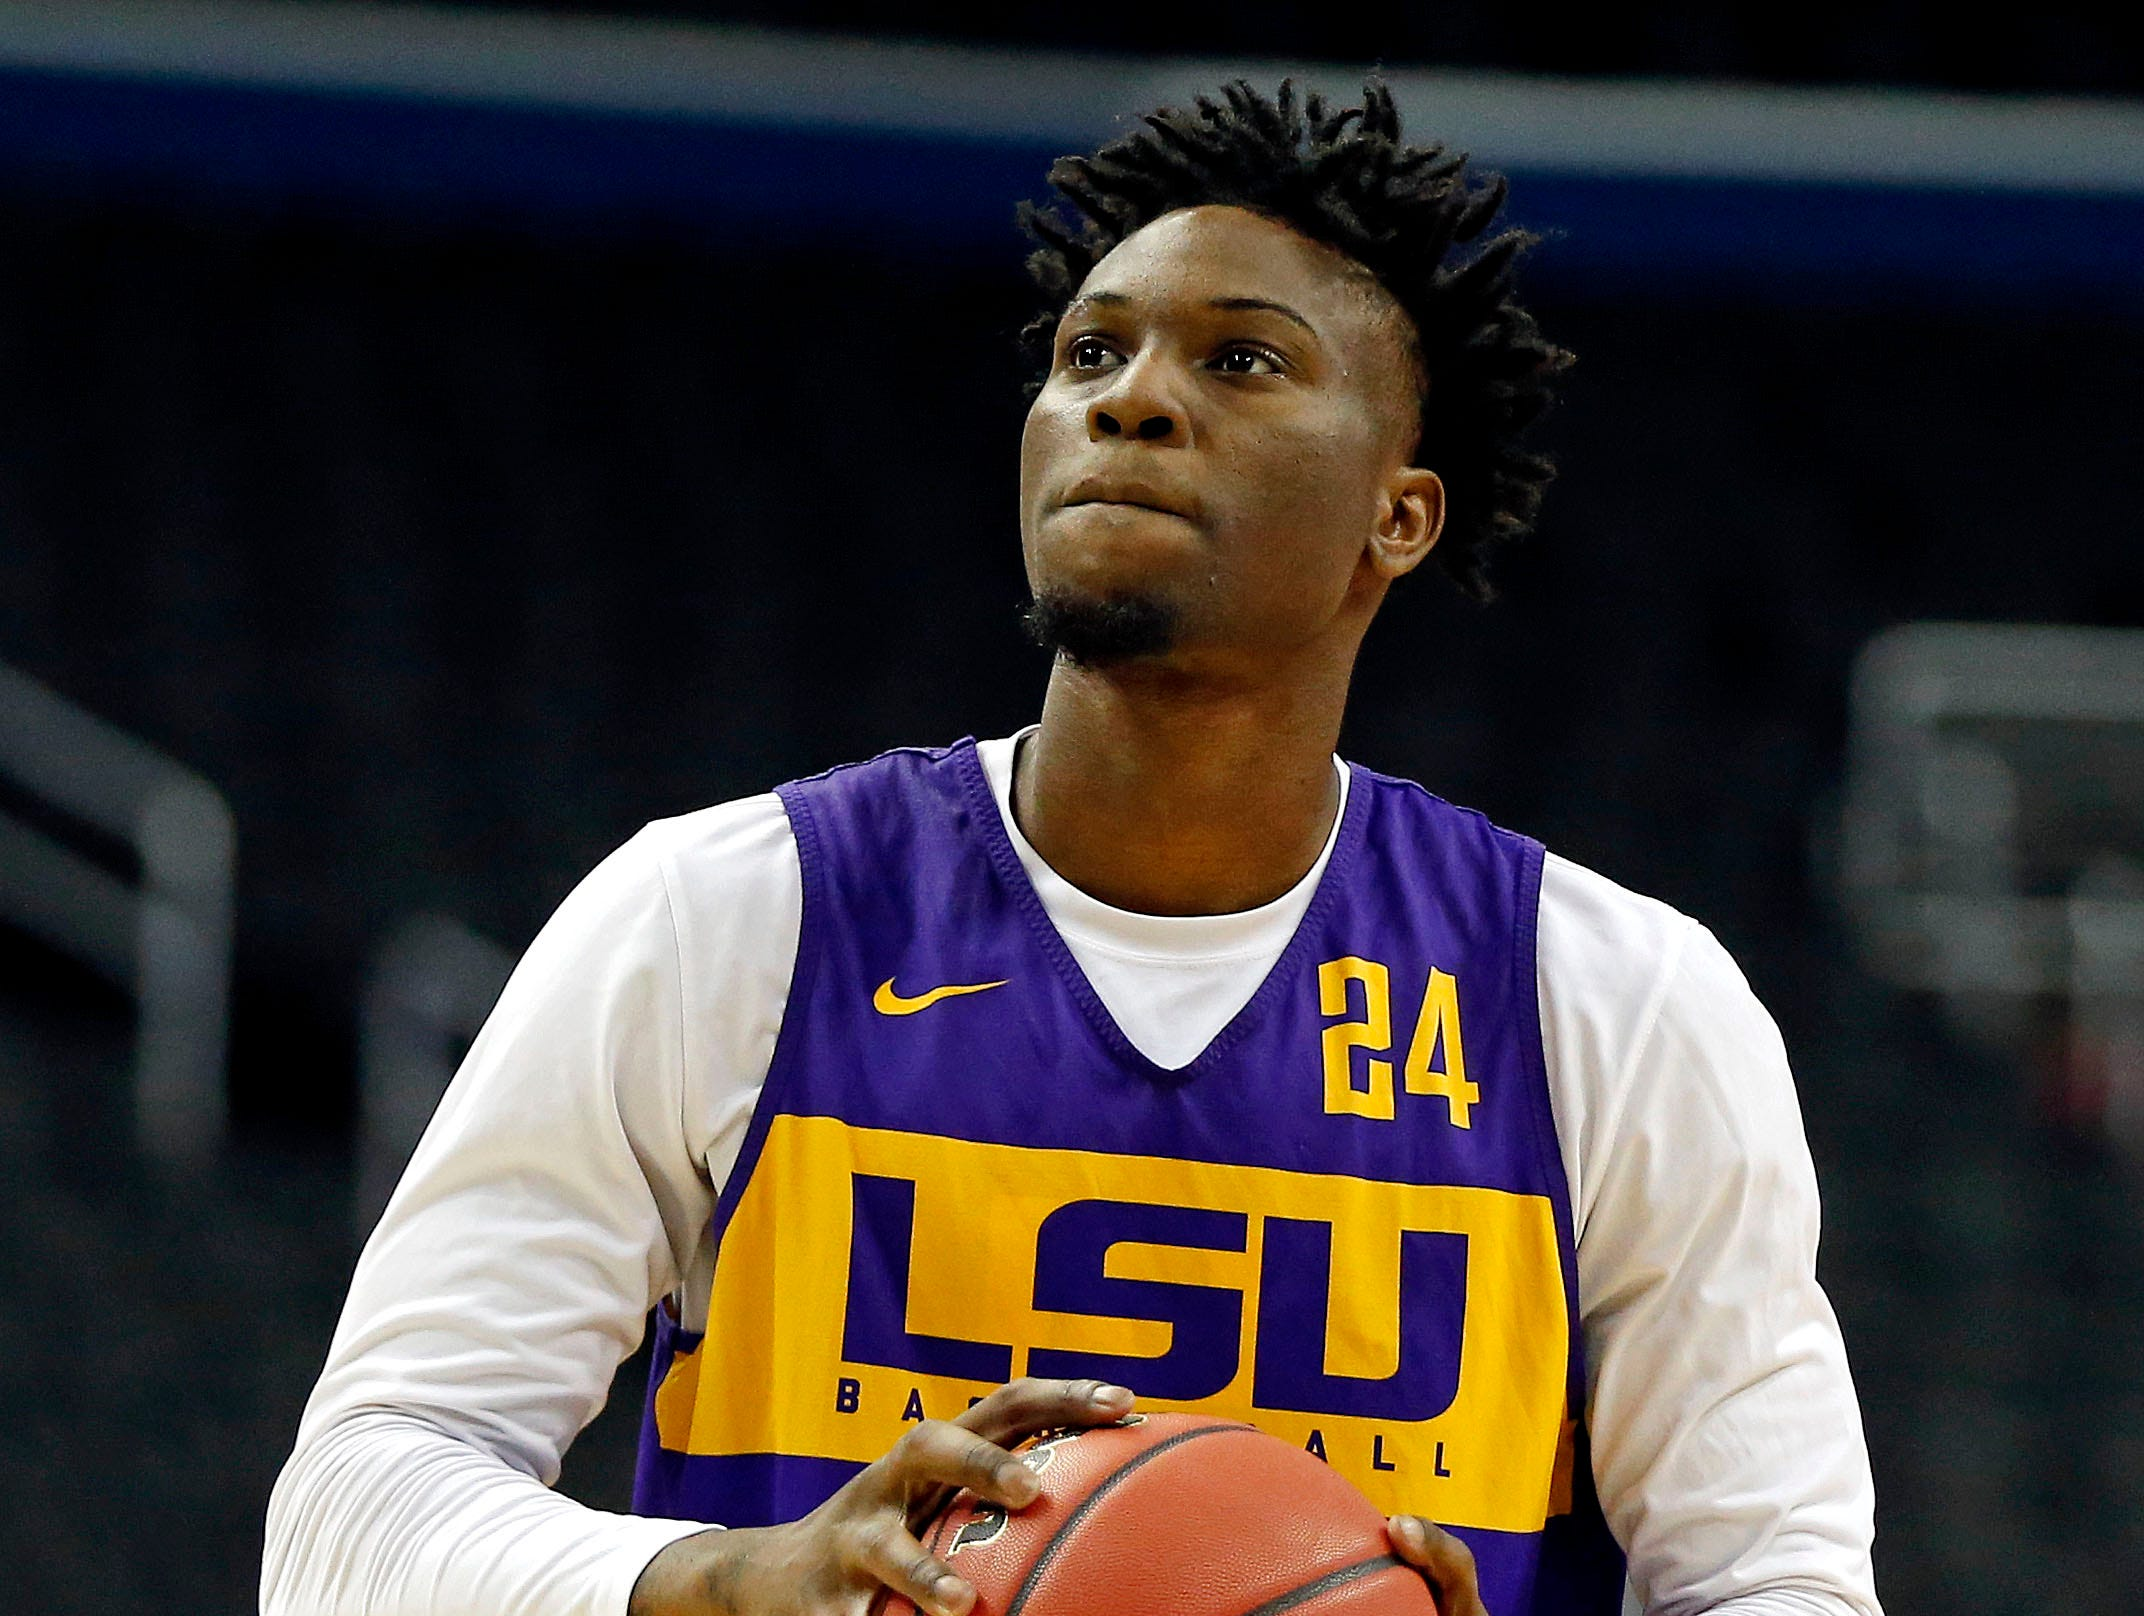 Mar 28, 2019; Washington, DC, USA; LSU Tigers forward Emmitt Williams (24) shoots the ball during practice for the east regional of the 2019 NCAA Tournament at Capital One Arena. Mandatory Credit: Amber Searls-USA TODAY Sports